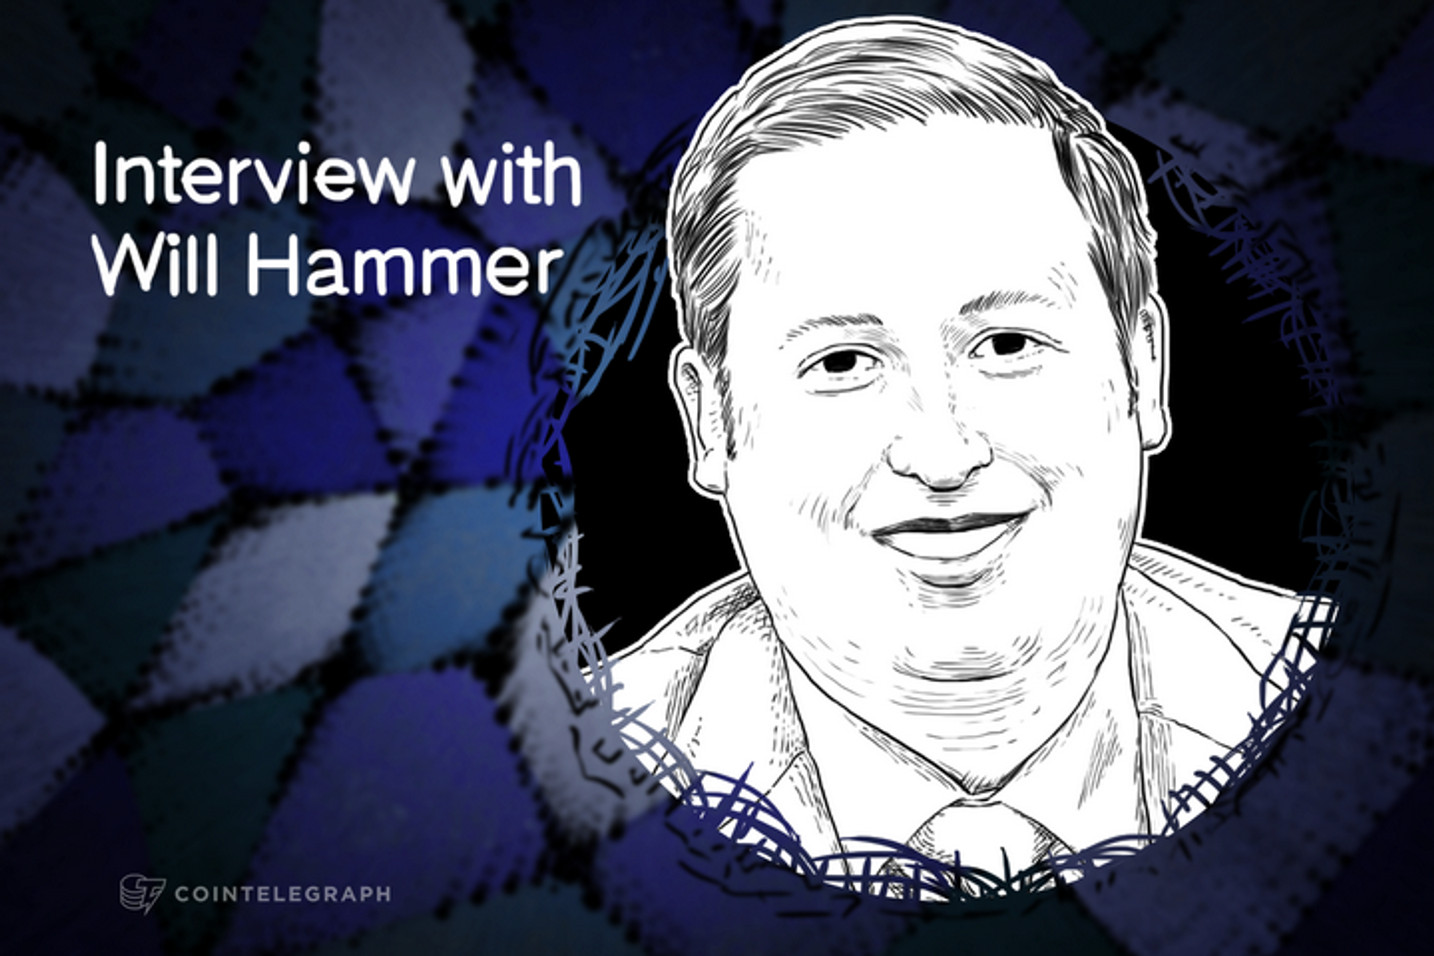 """""""I Would Fight to Make Sure that the Bitcoin Sector Would Stay Unregulated"""" - Libertarian Candidate, Will Hammer"""